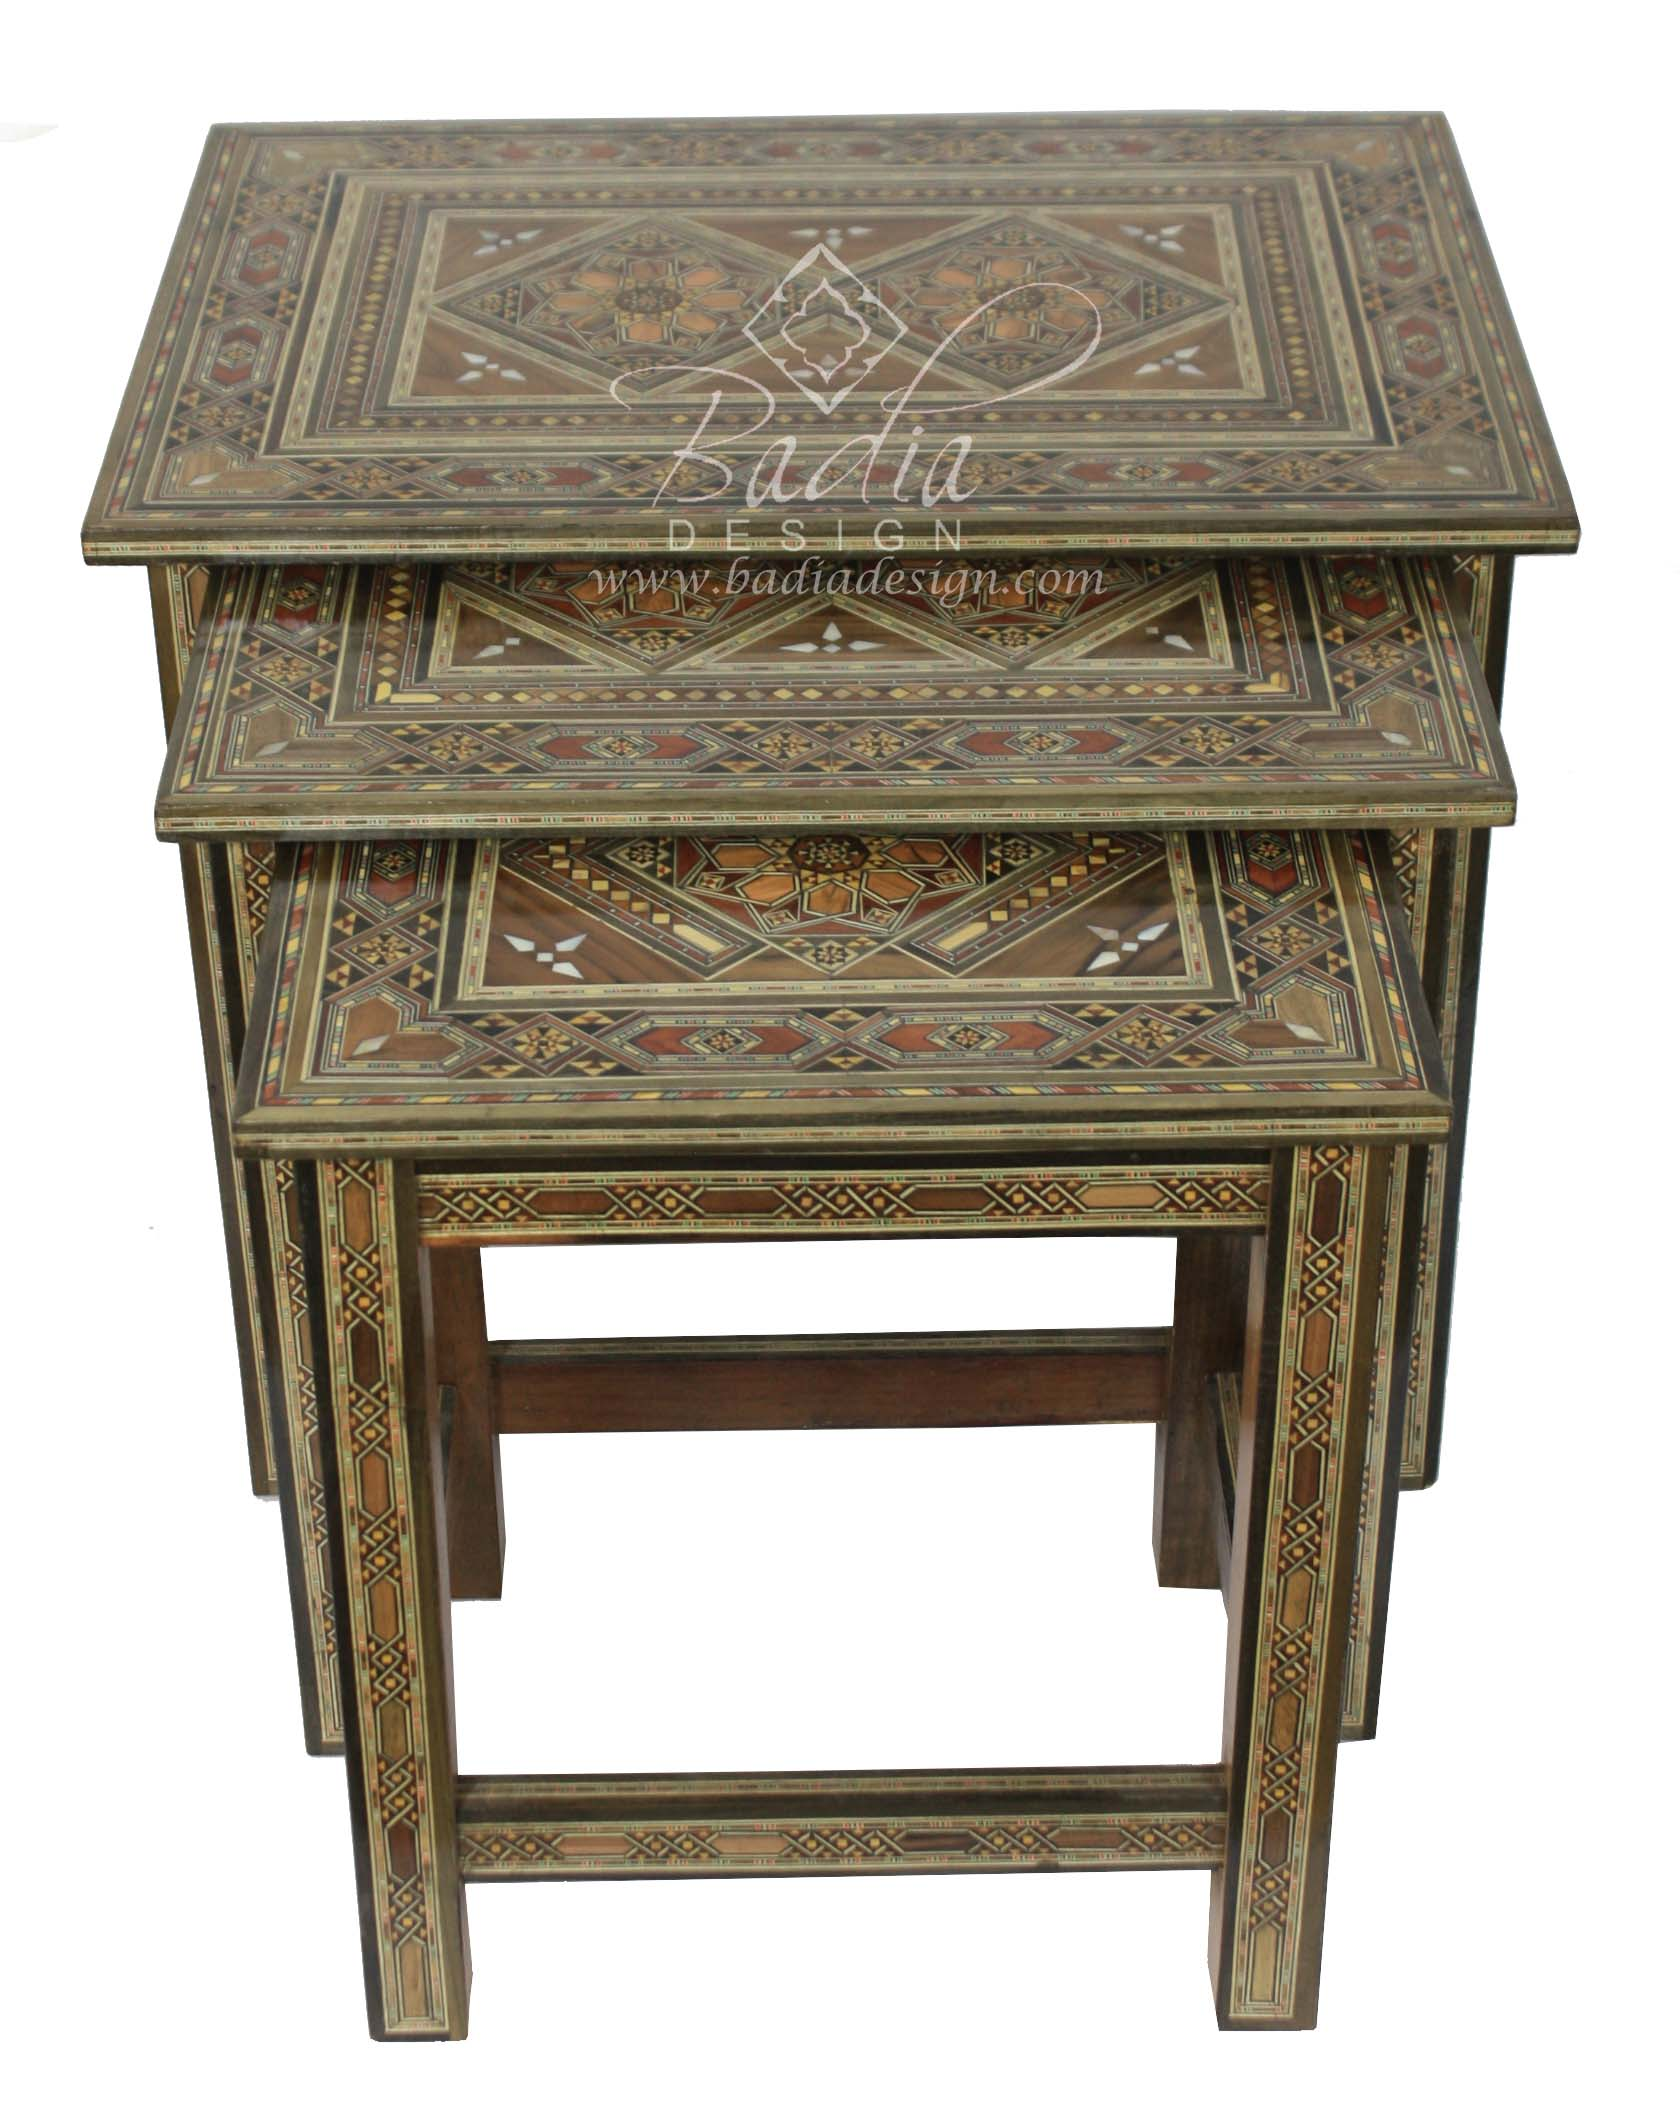 syrian-design-inlaid-nesting-tables-mop-st083-1.jpg